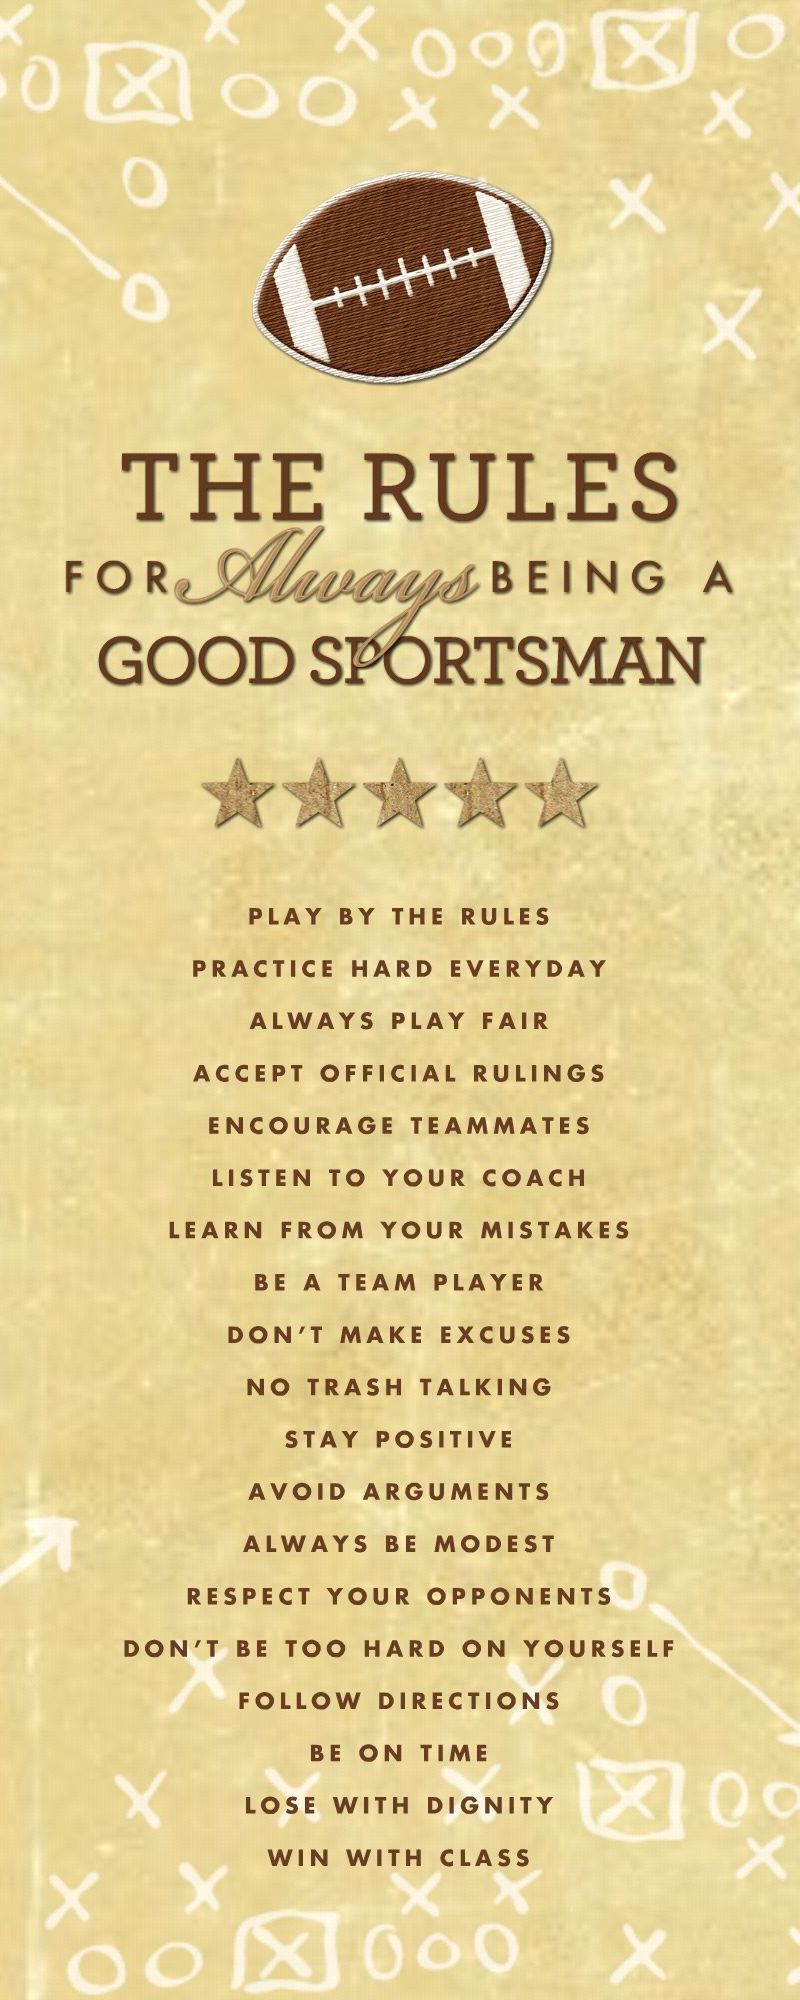 HM Good Sportsman Rules (Football)